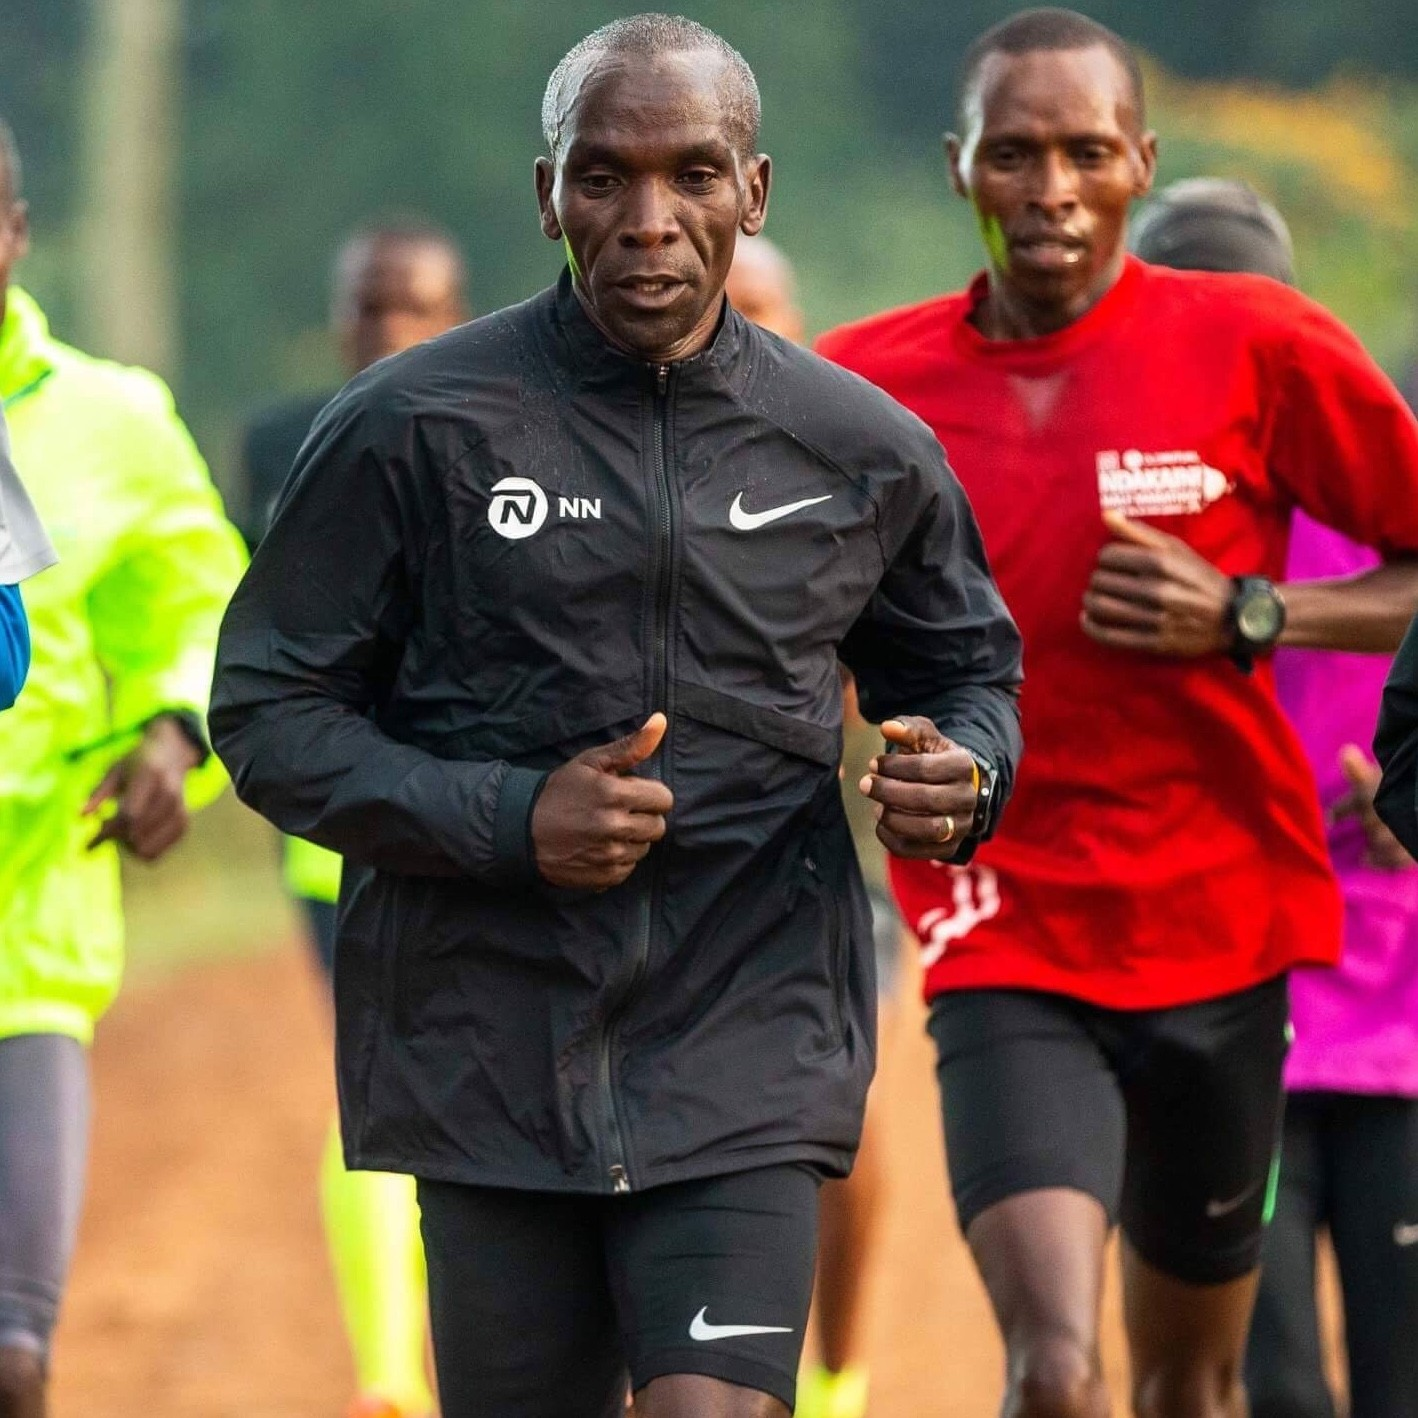 Eliud Kipchoge is a simple man who helps others - Part three of a three part series on the King of the Marathon